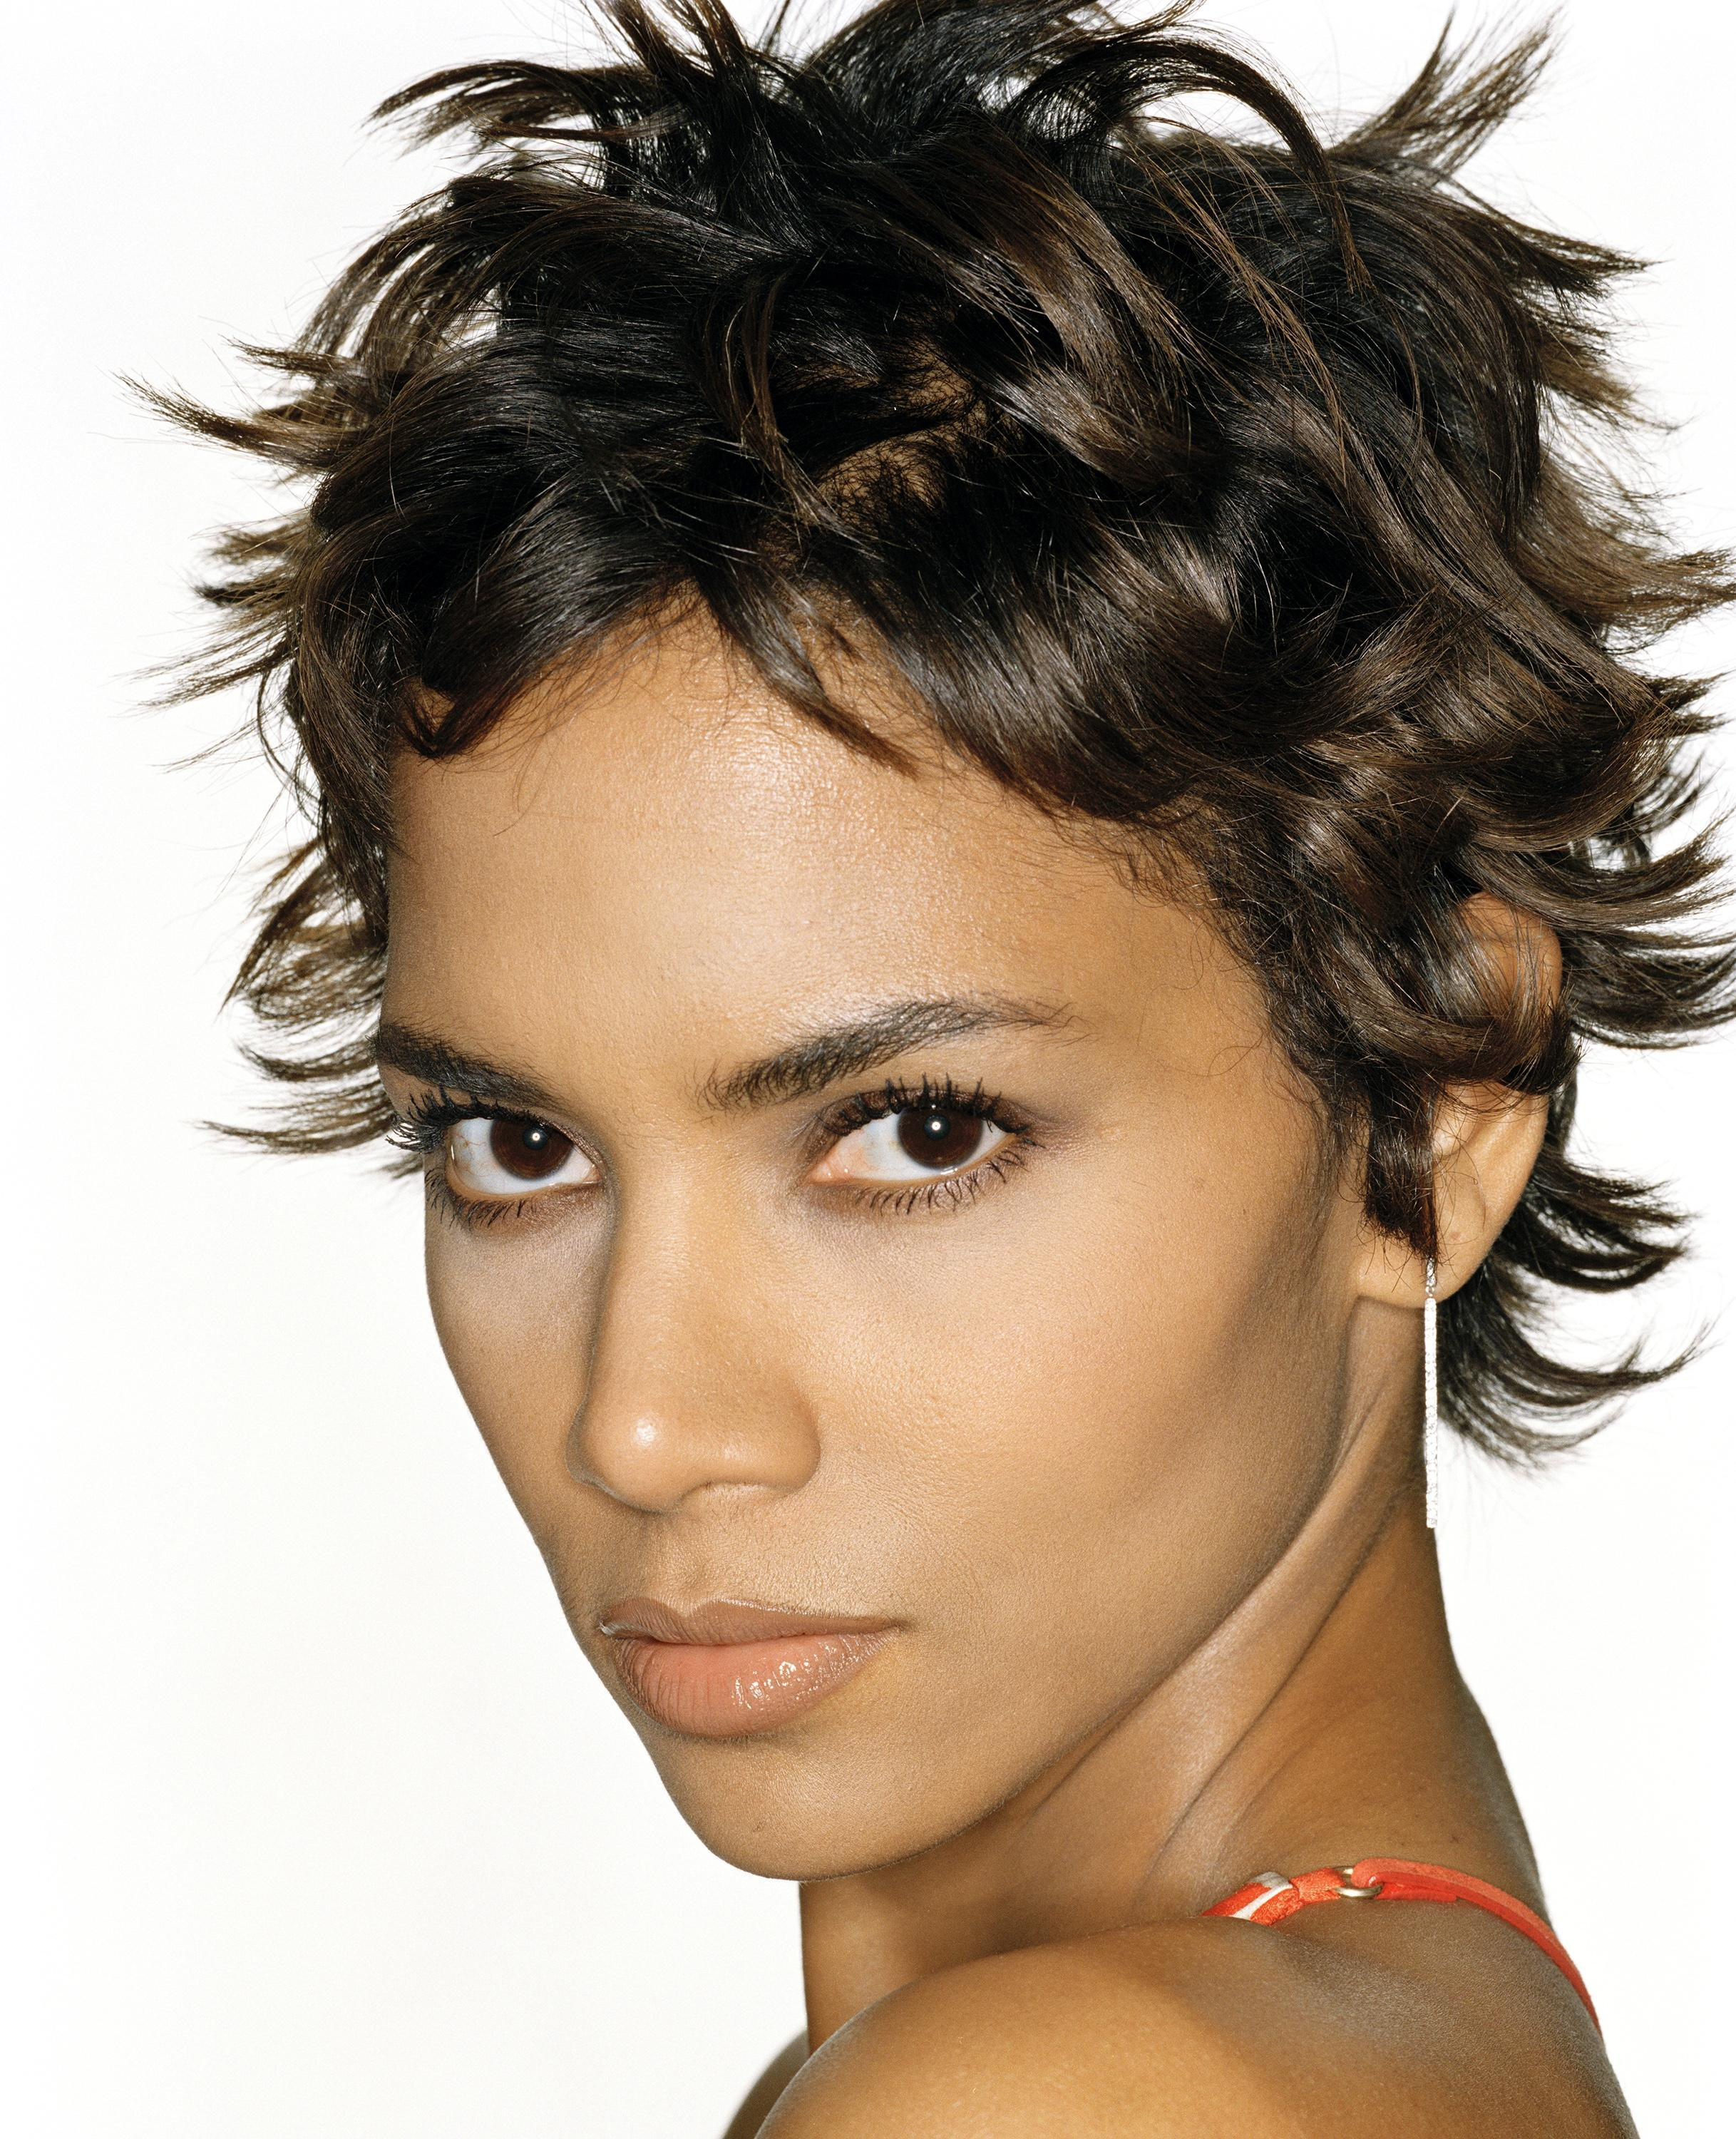 halle berry Celebrity HD Wallpaper